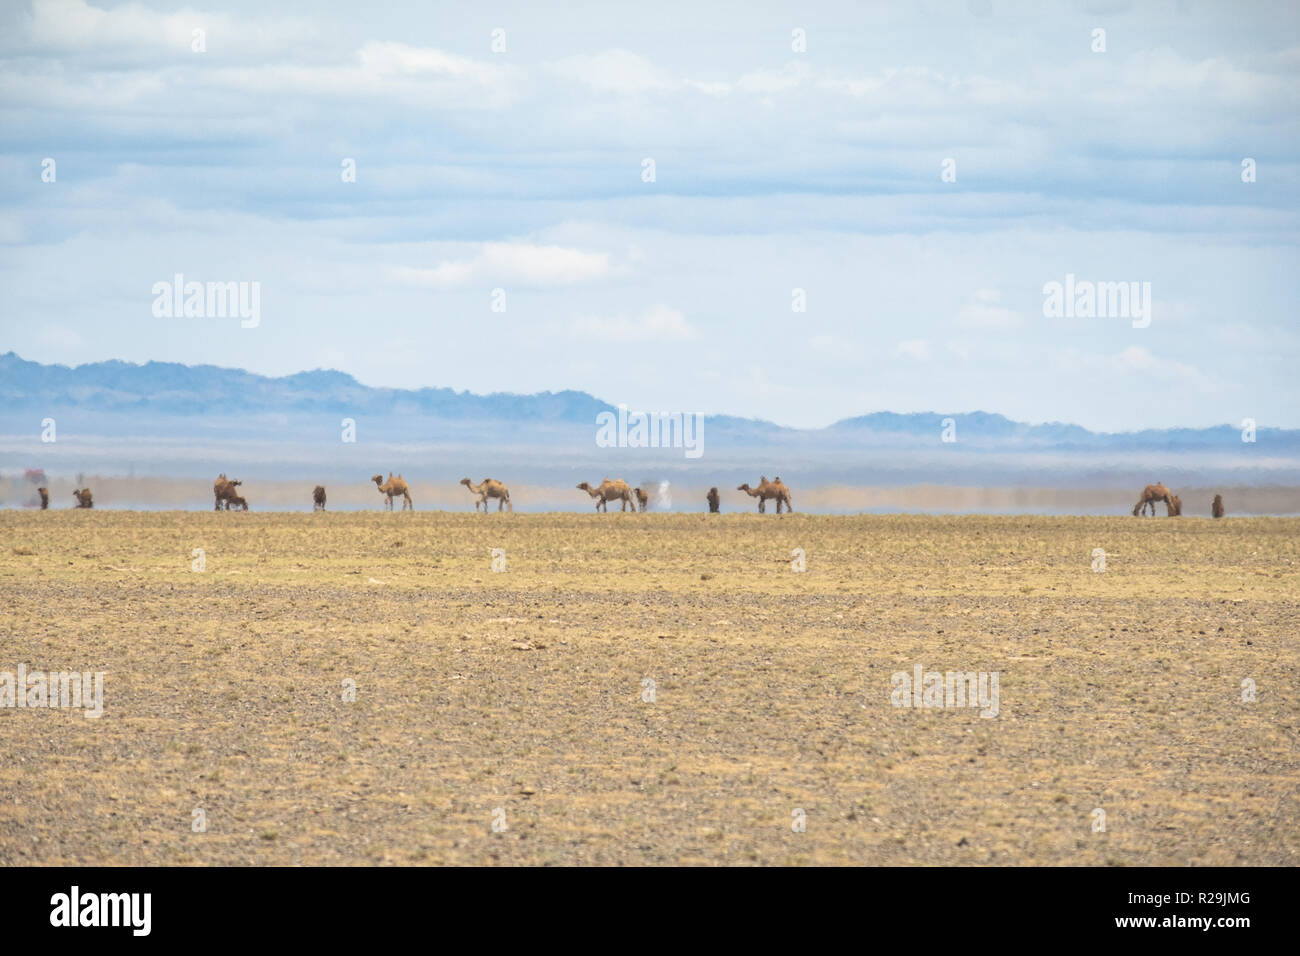 Bactrian camels on the move in the vast Gobi desert landscape with an inferior mirage in the background. - Stock Image